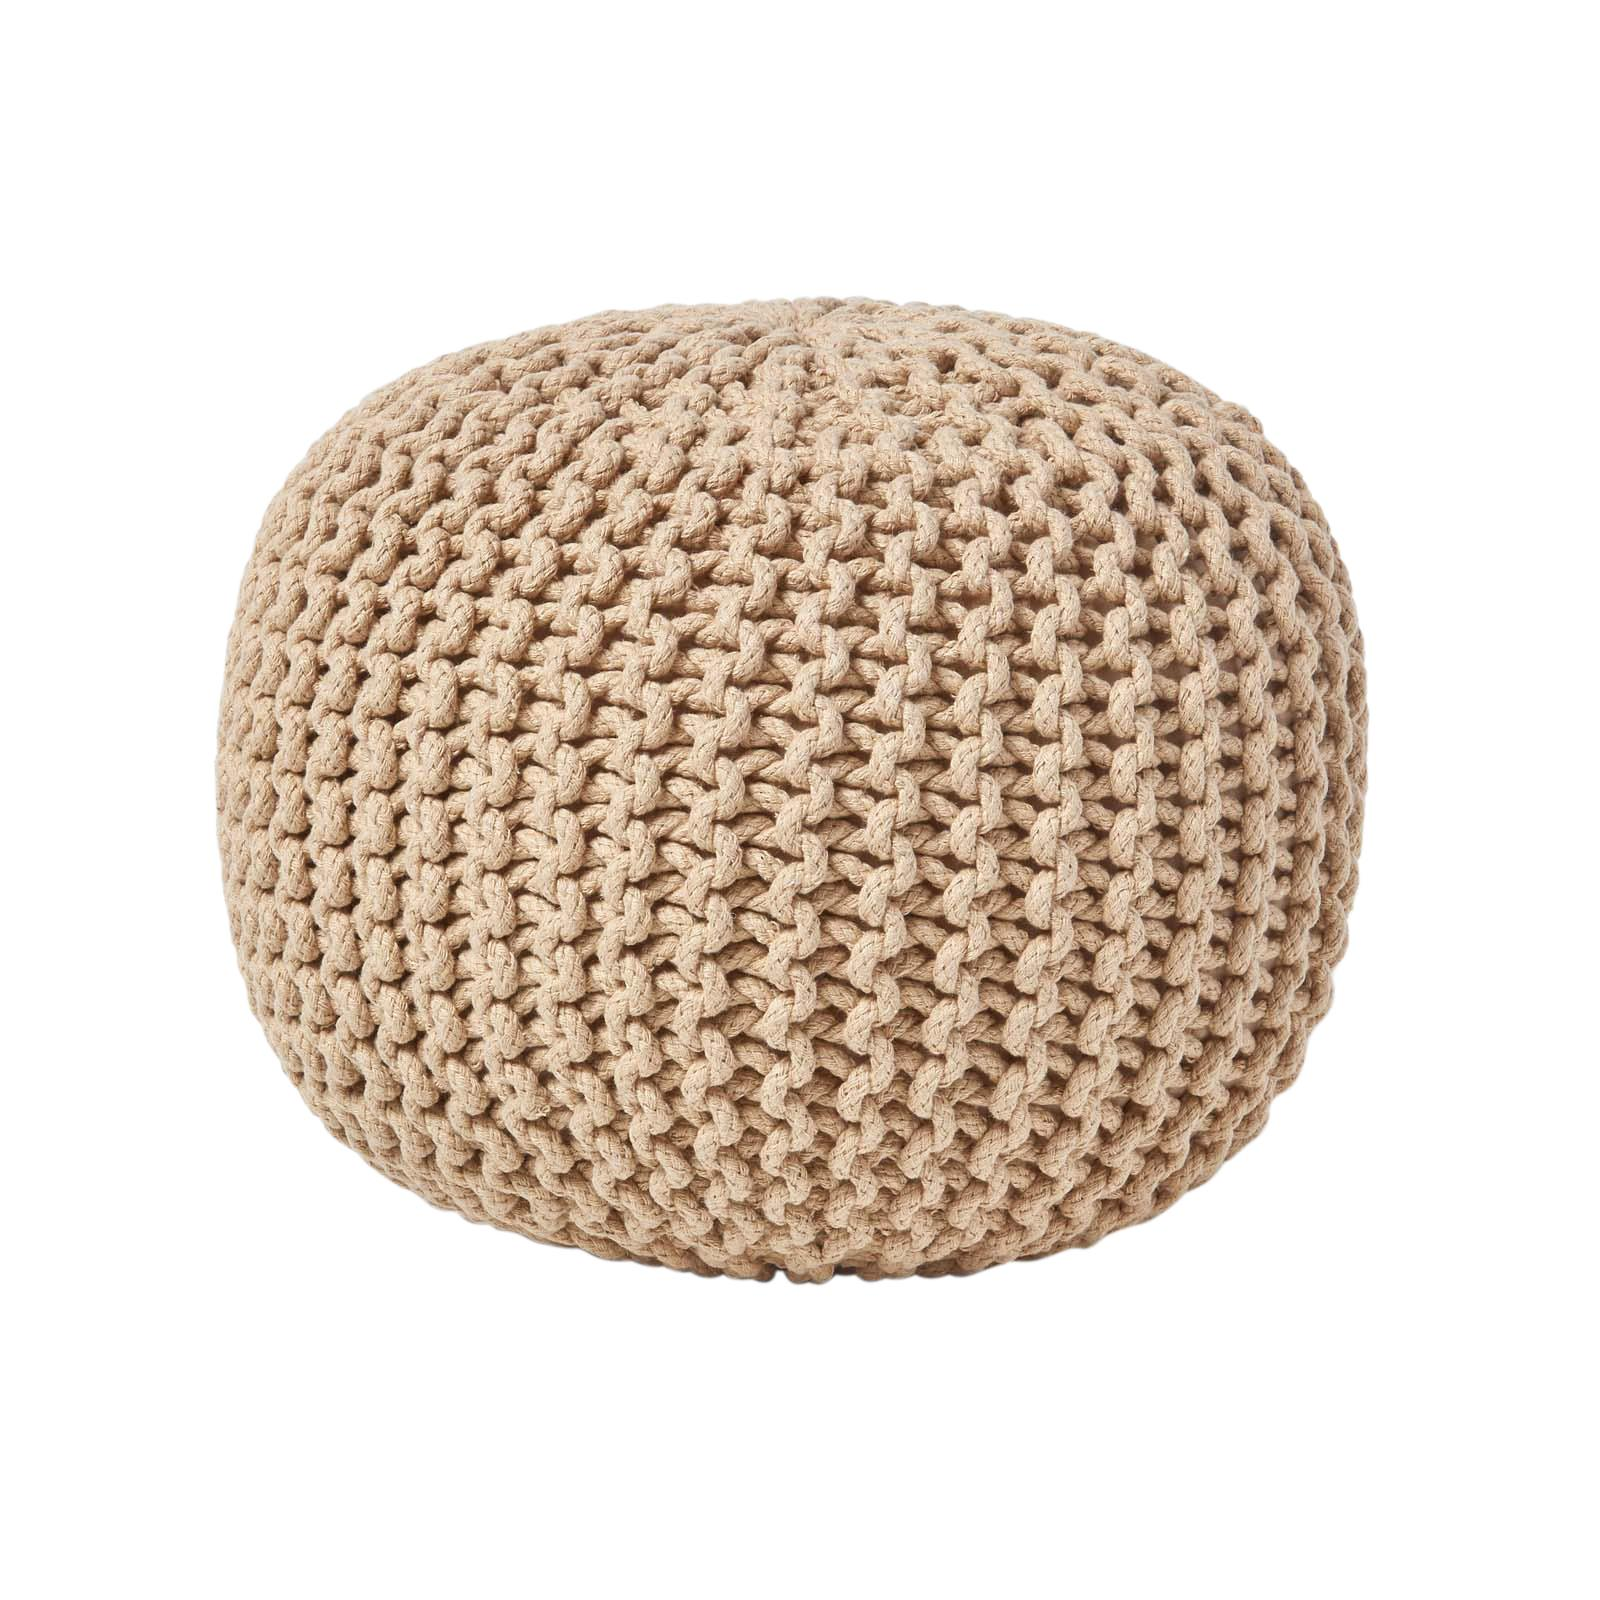 Hand-Knitted-100-Cotton-Pouffes-Round-Sphere-Or-Cube-Square-Chunky-Footstools thumbnail 74